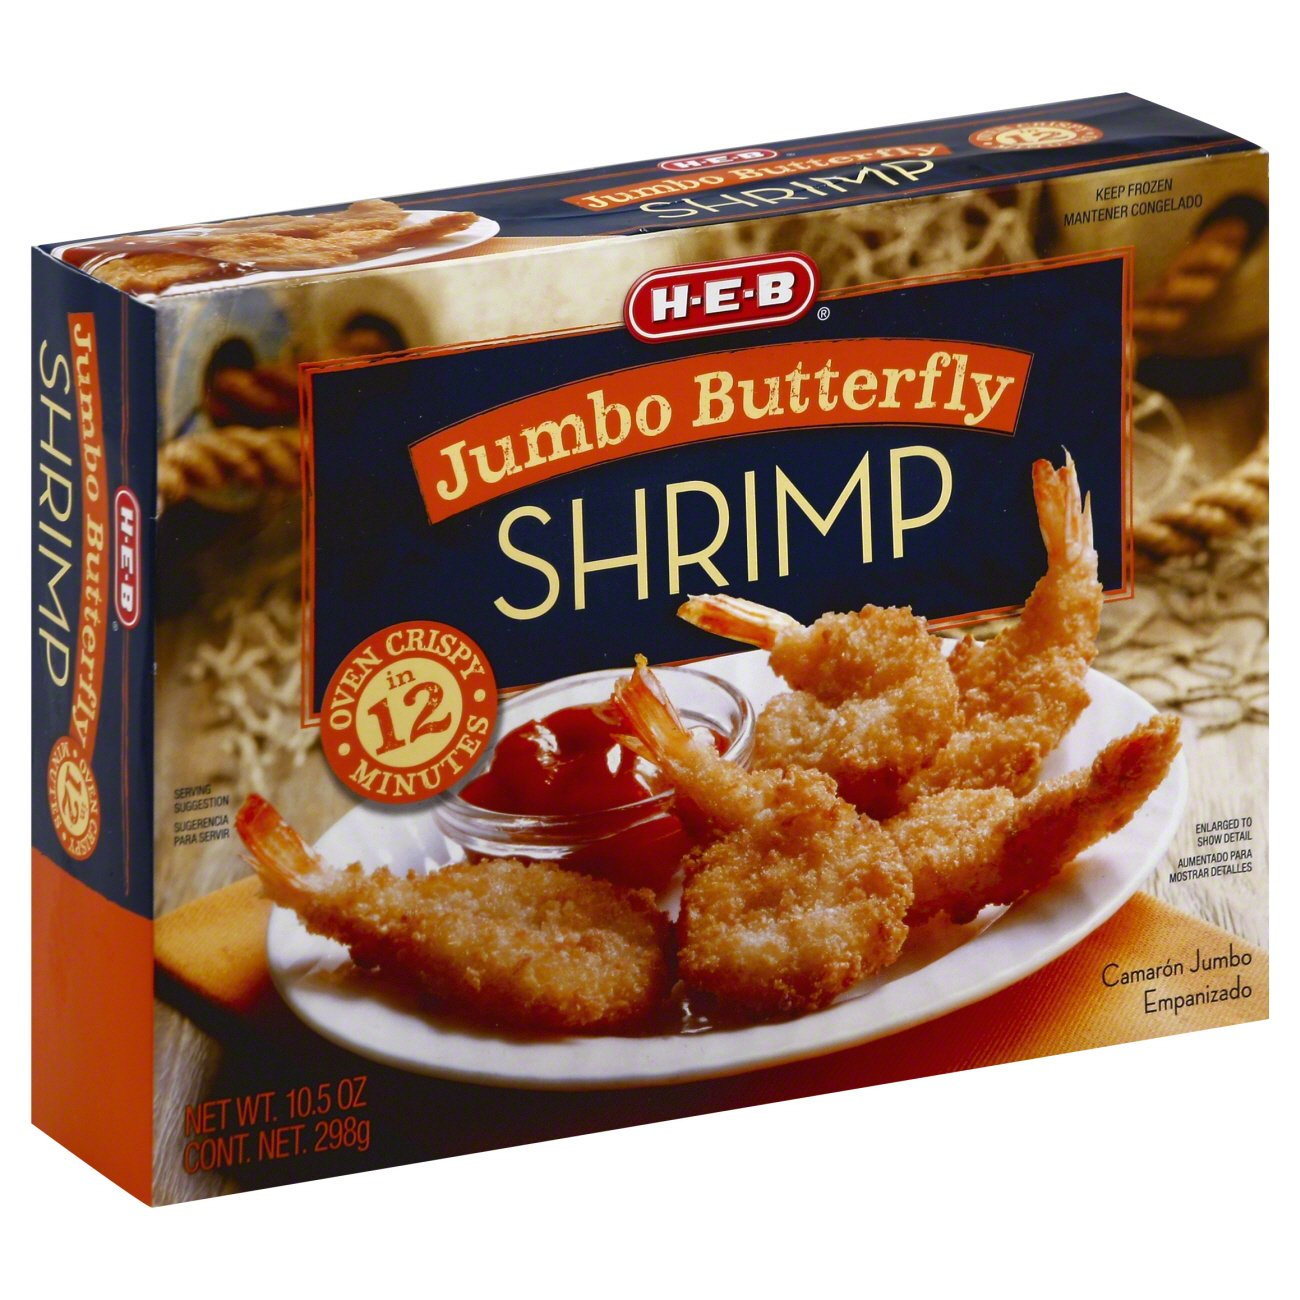 H E B Jumbo Butterfly Shrimp Shop Shrimp Shellfish At H E B